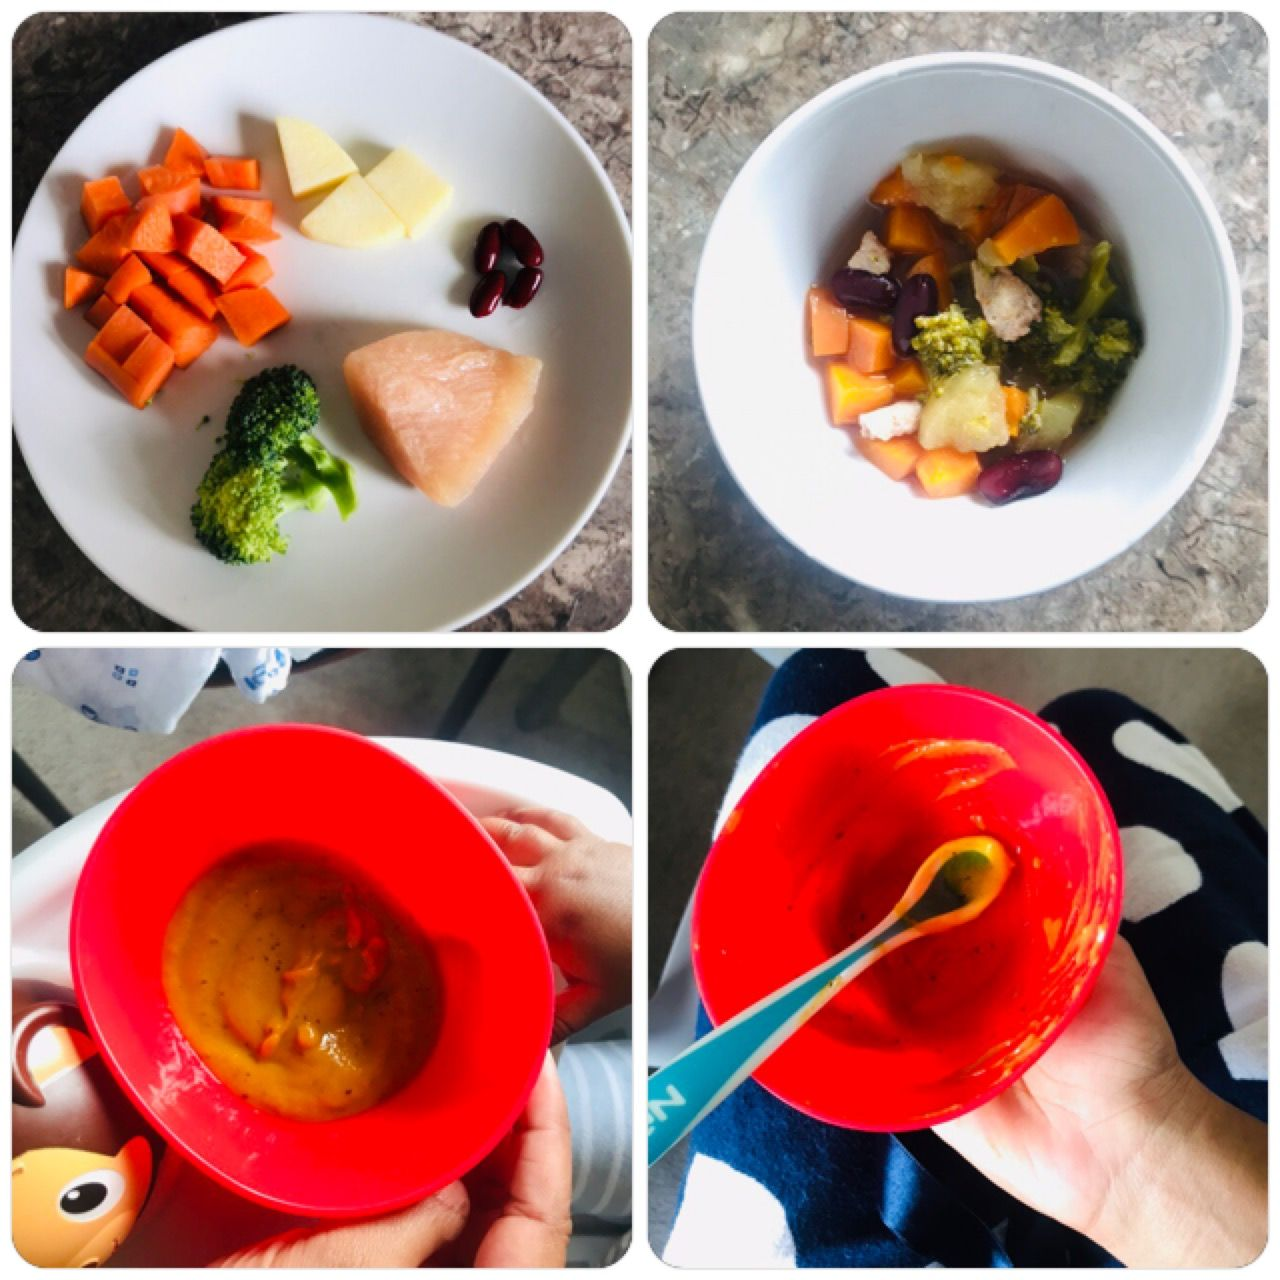 Baby Food In 2020 Baby Food Recipes Food Kidney Beans